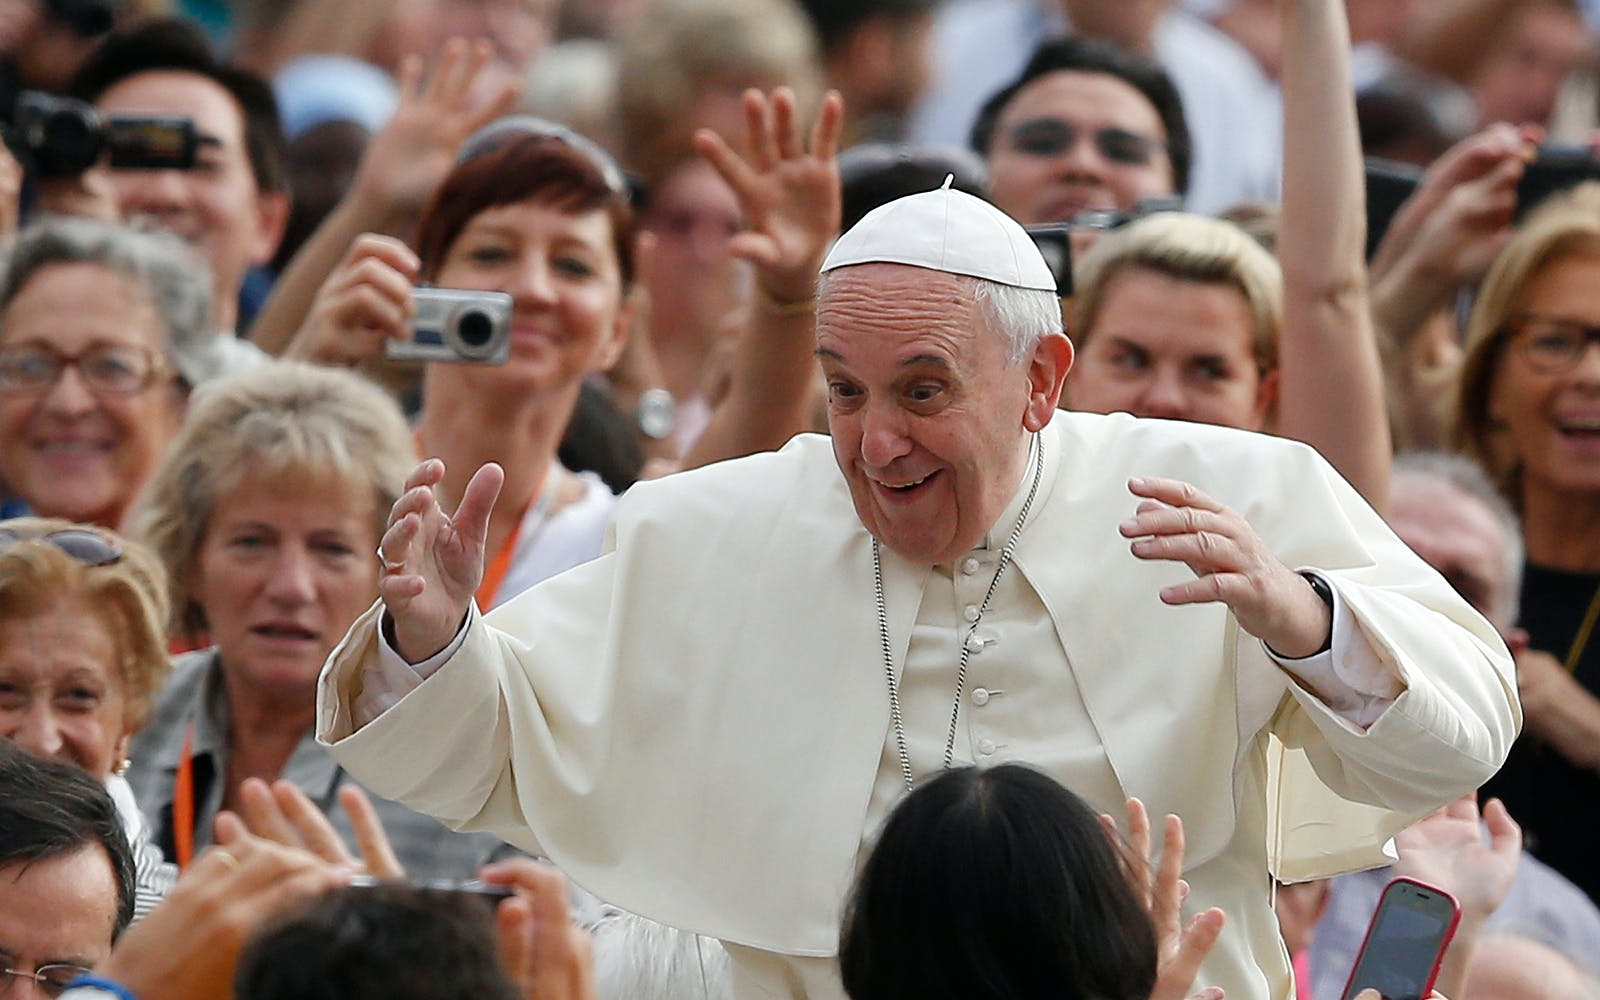 papal audience experience with pope francis (only wednesdays)-6